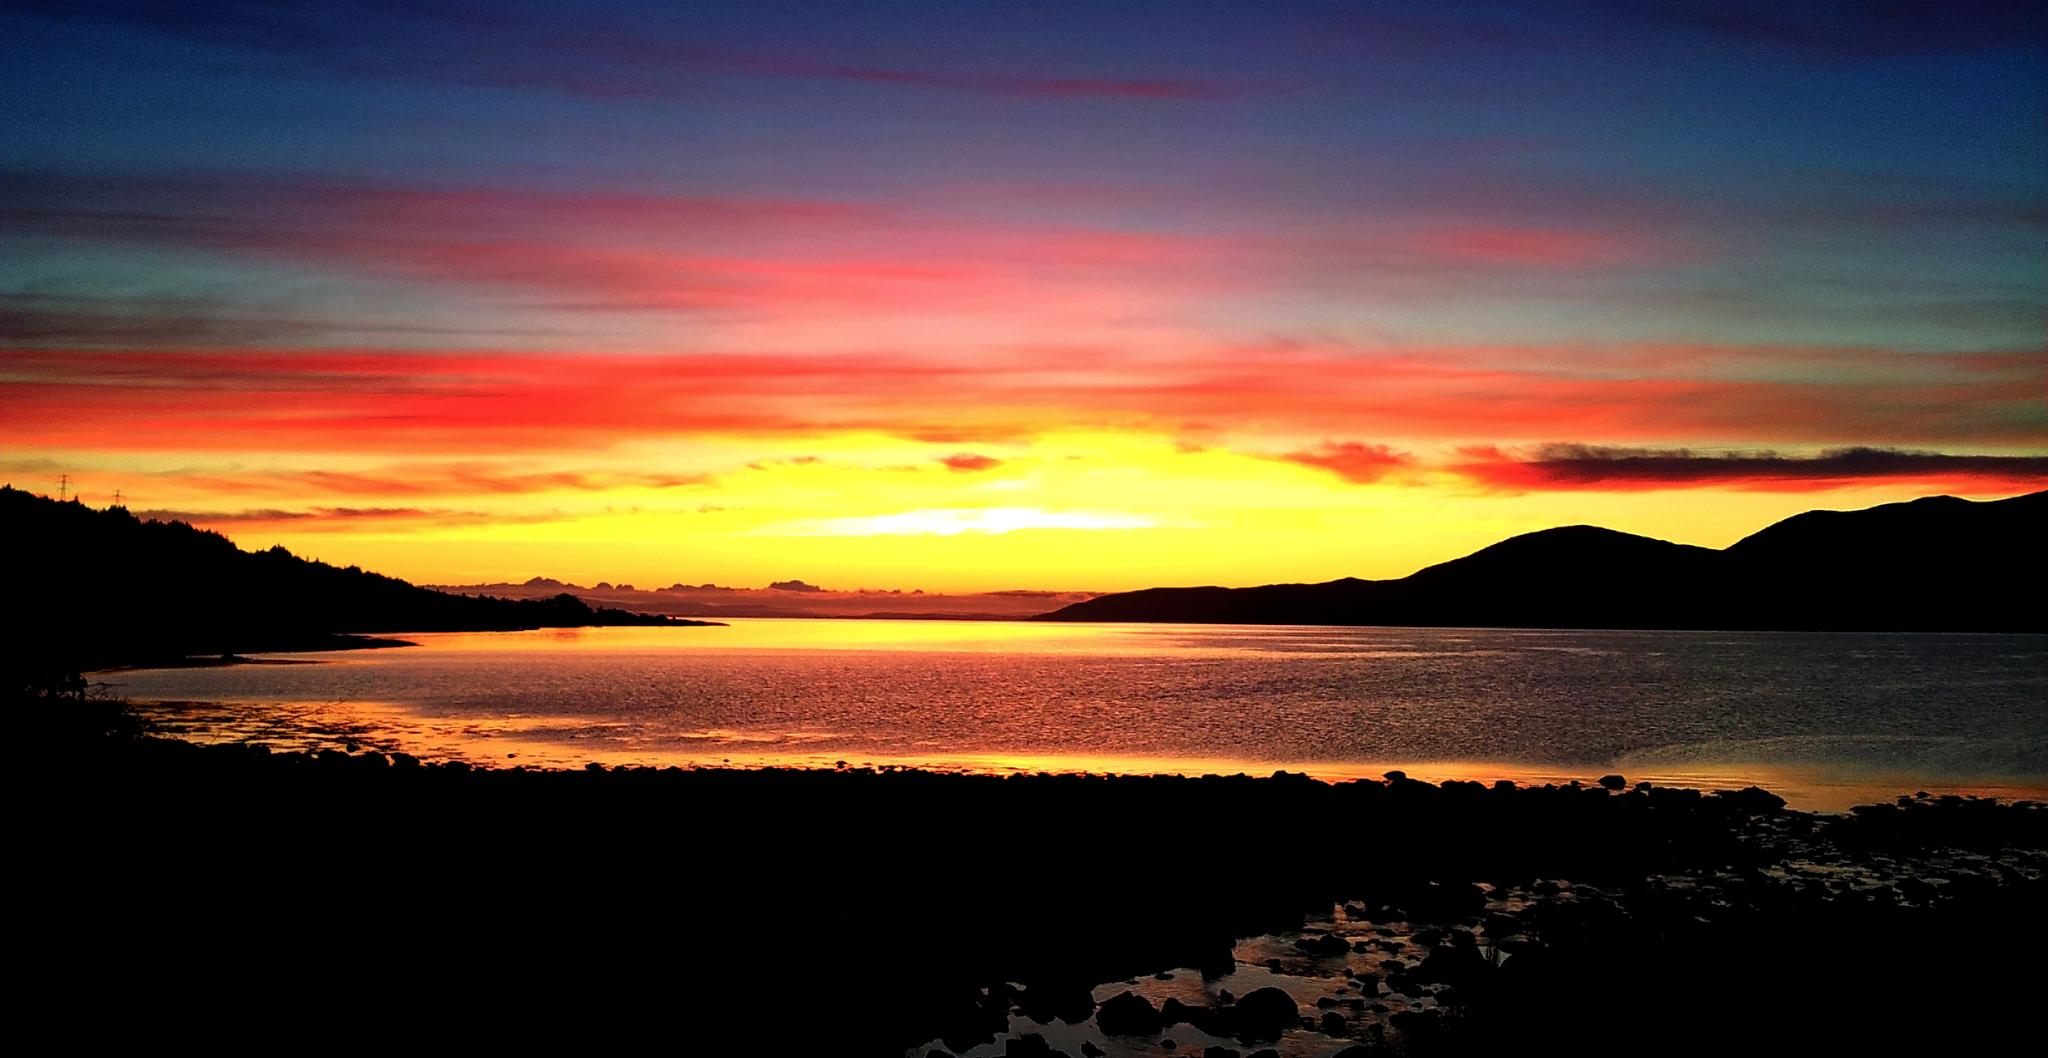 Sunrise over the Firth of Clyde and Arran, Scotland by Rupert.Johnson